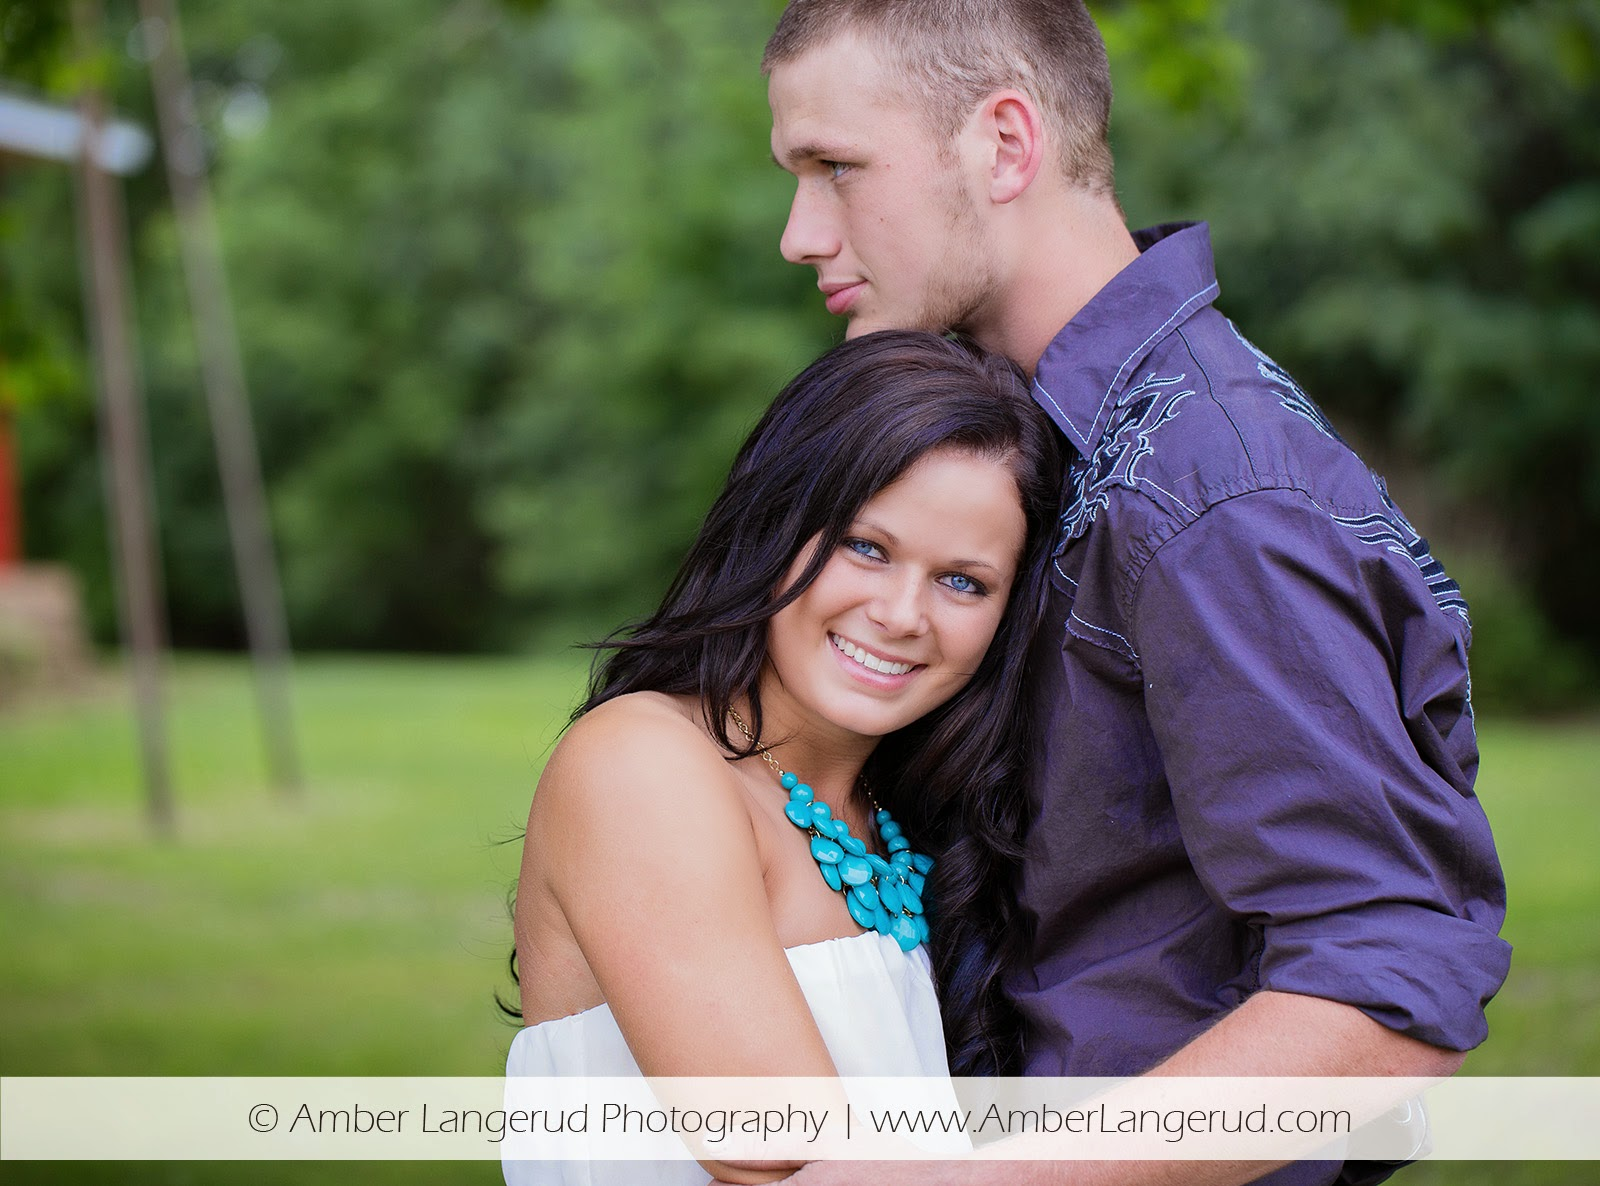 Outdoor Country Engagement Pictures | Detroit Lakes Area Photographer | Engagement Photos Faces Close